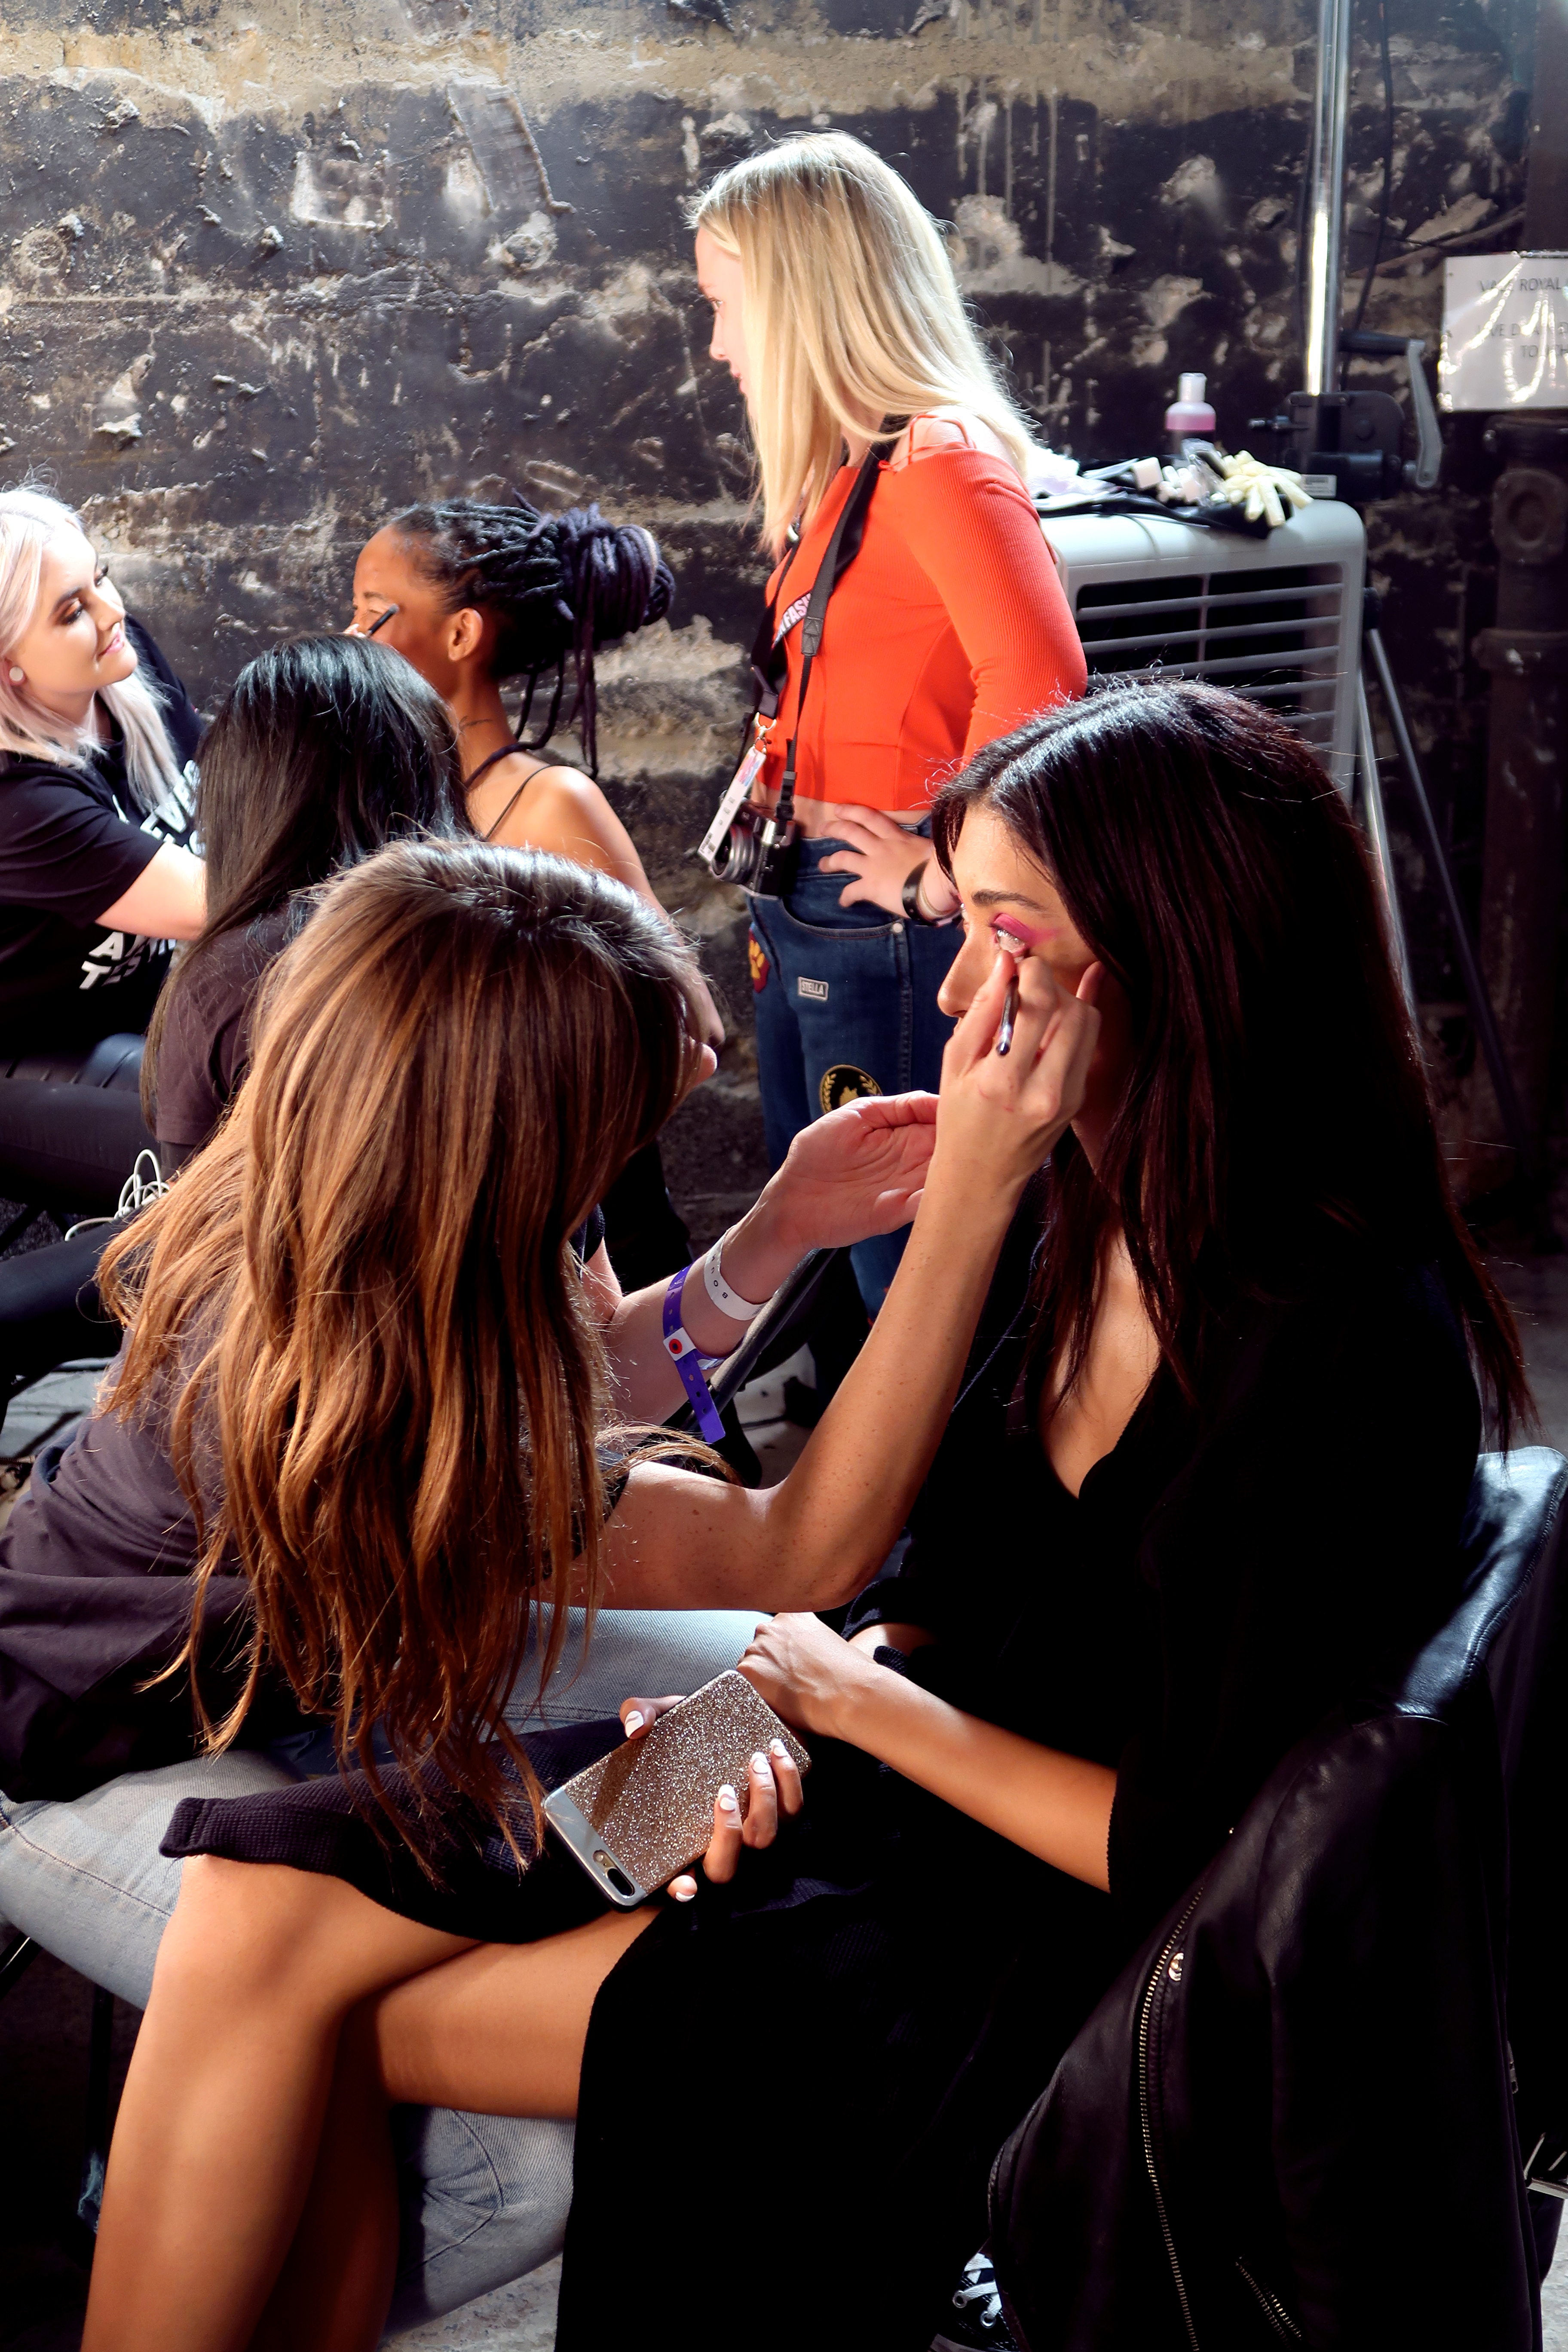 MEGAN ELLABY REVIEW OF MAKE UP BACKSTAGE AT HOUSE OF HOLLAND